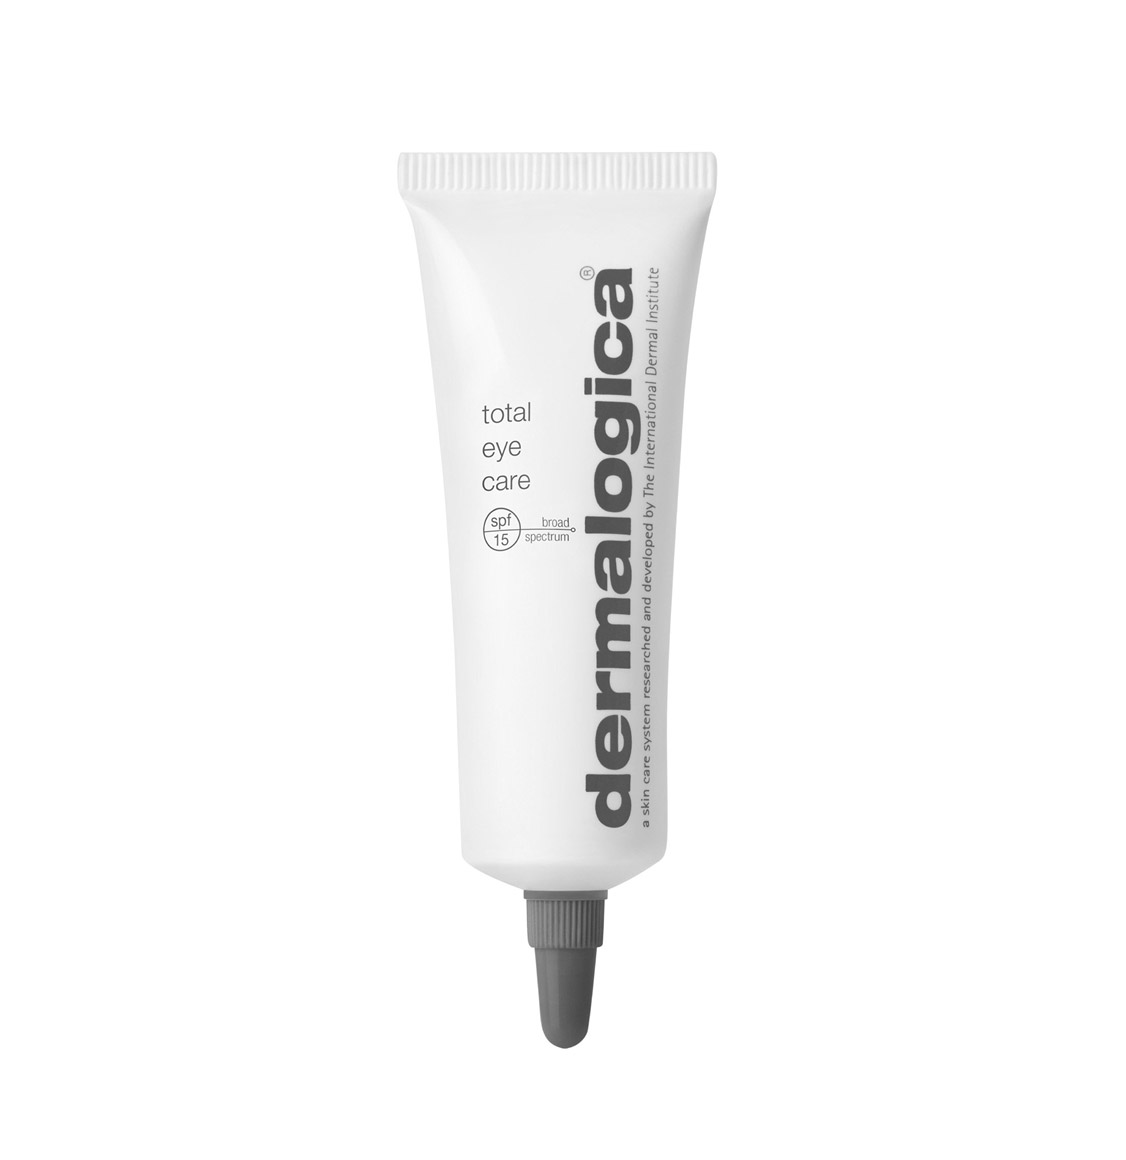 Dermalogica Total Eye Care With SPF15 15ml